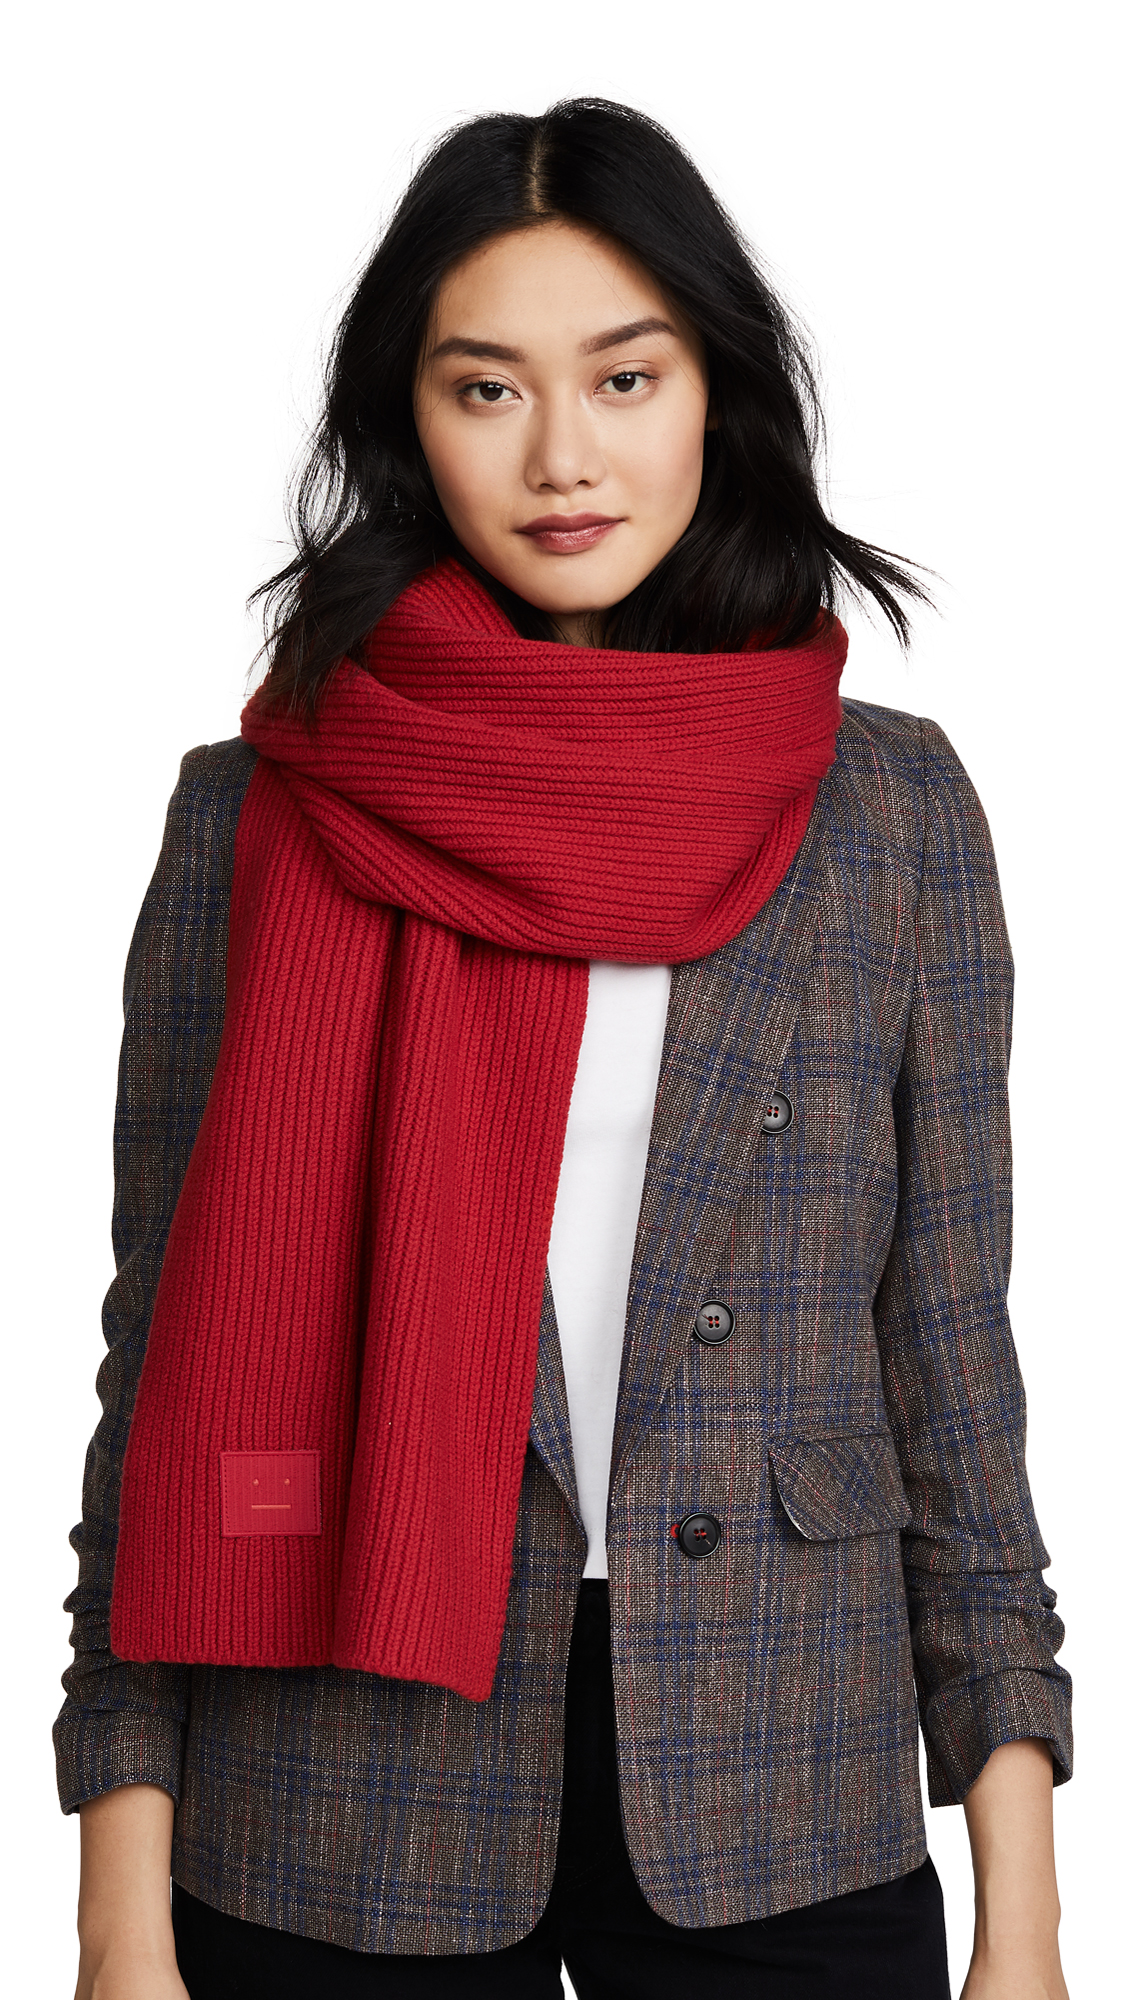 Acne Studios Bansy S Face Scarf - Tomato Red